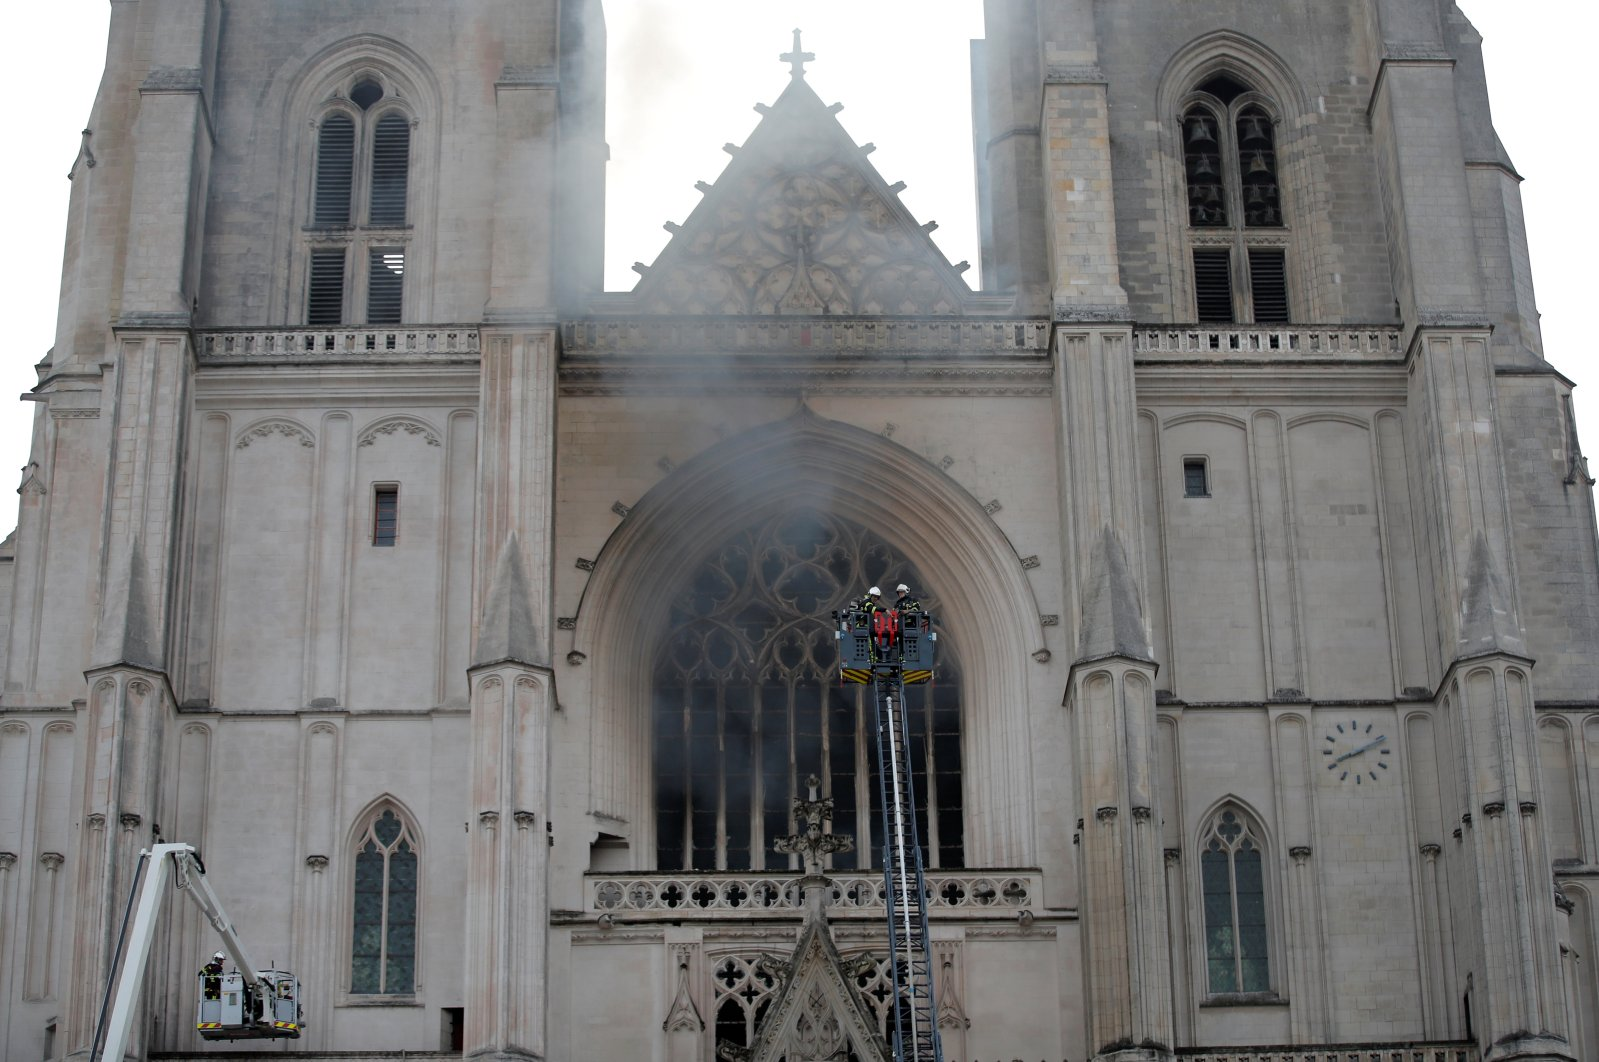 French firefighters battle a blaze at the Cathedral of Saint Pierre and Saint Paul in Nantes, France, July 18, 2020. (Reuters Photo)